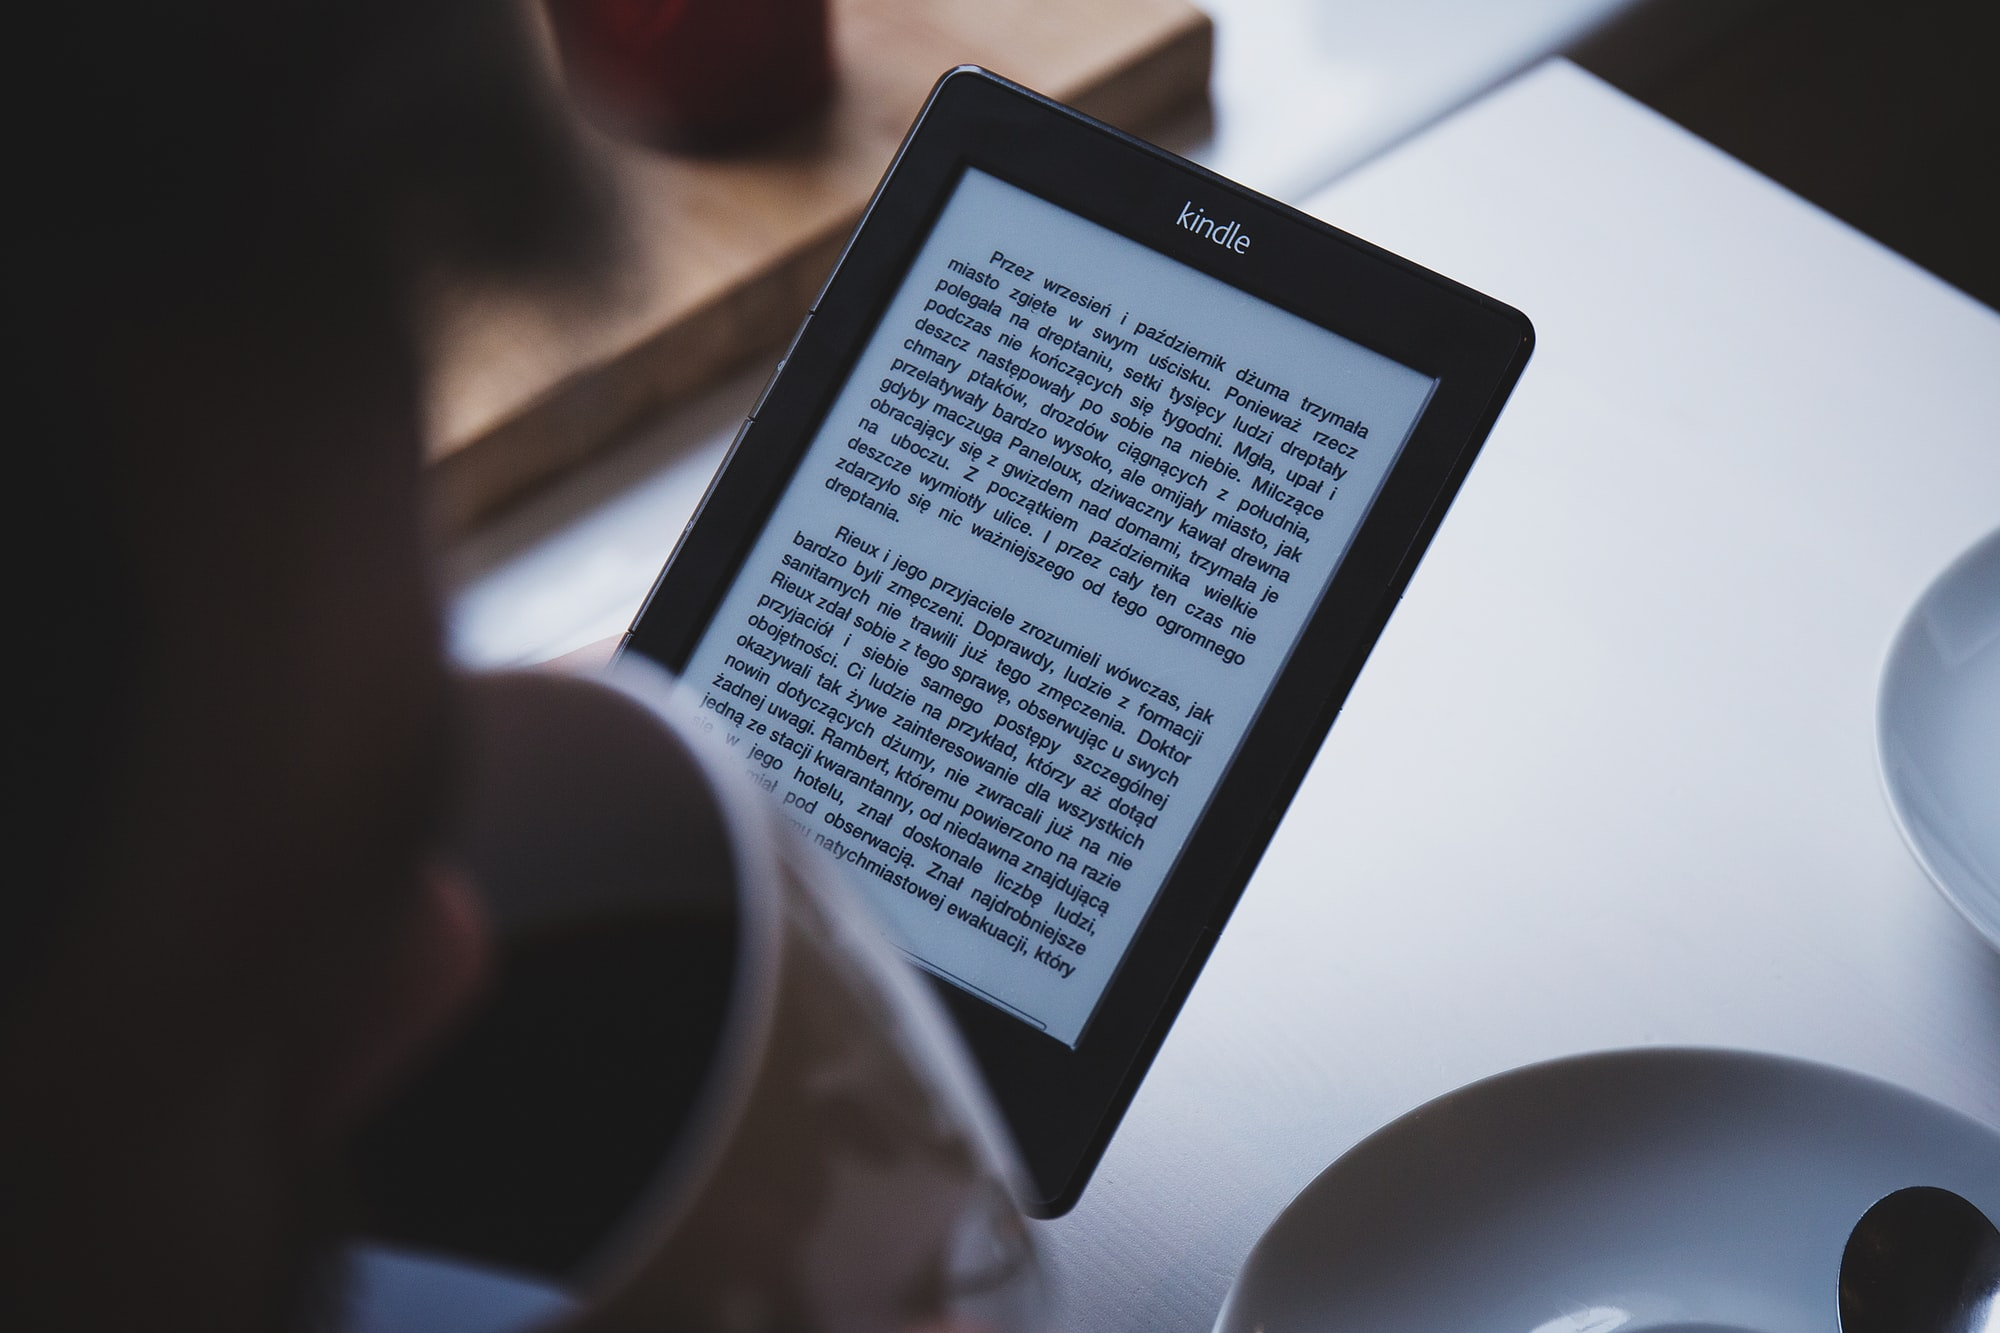 Ebook rise may be slower than many think